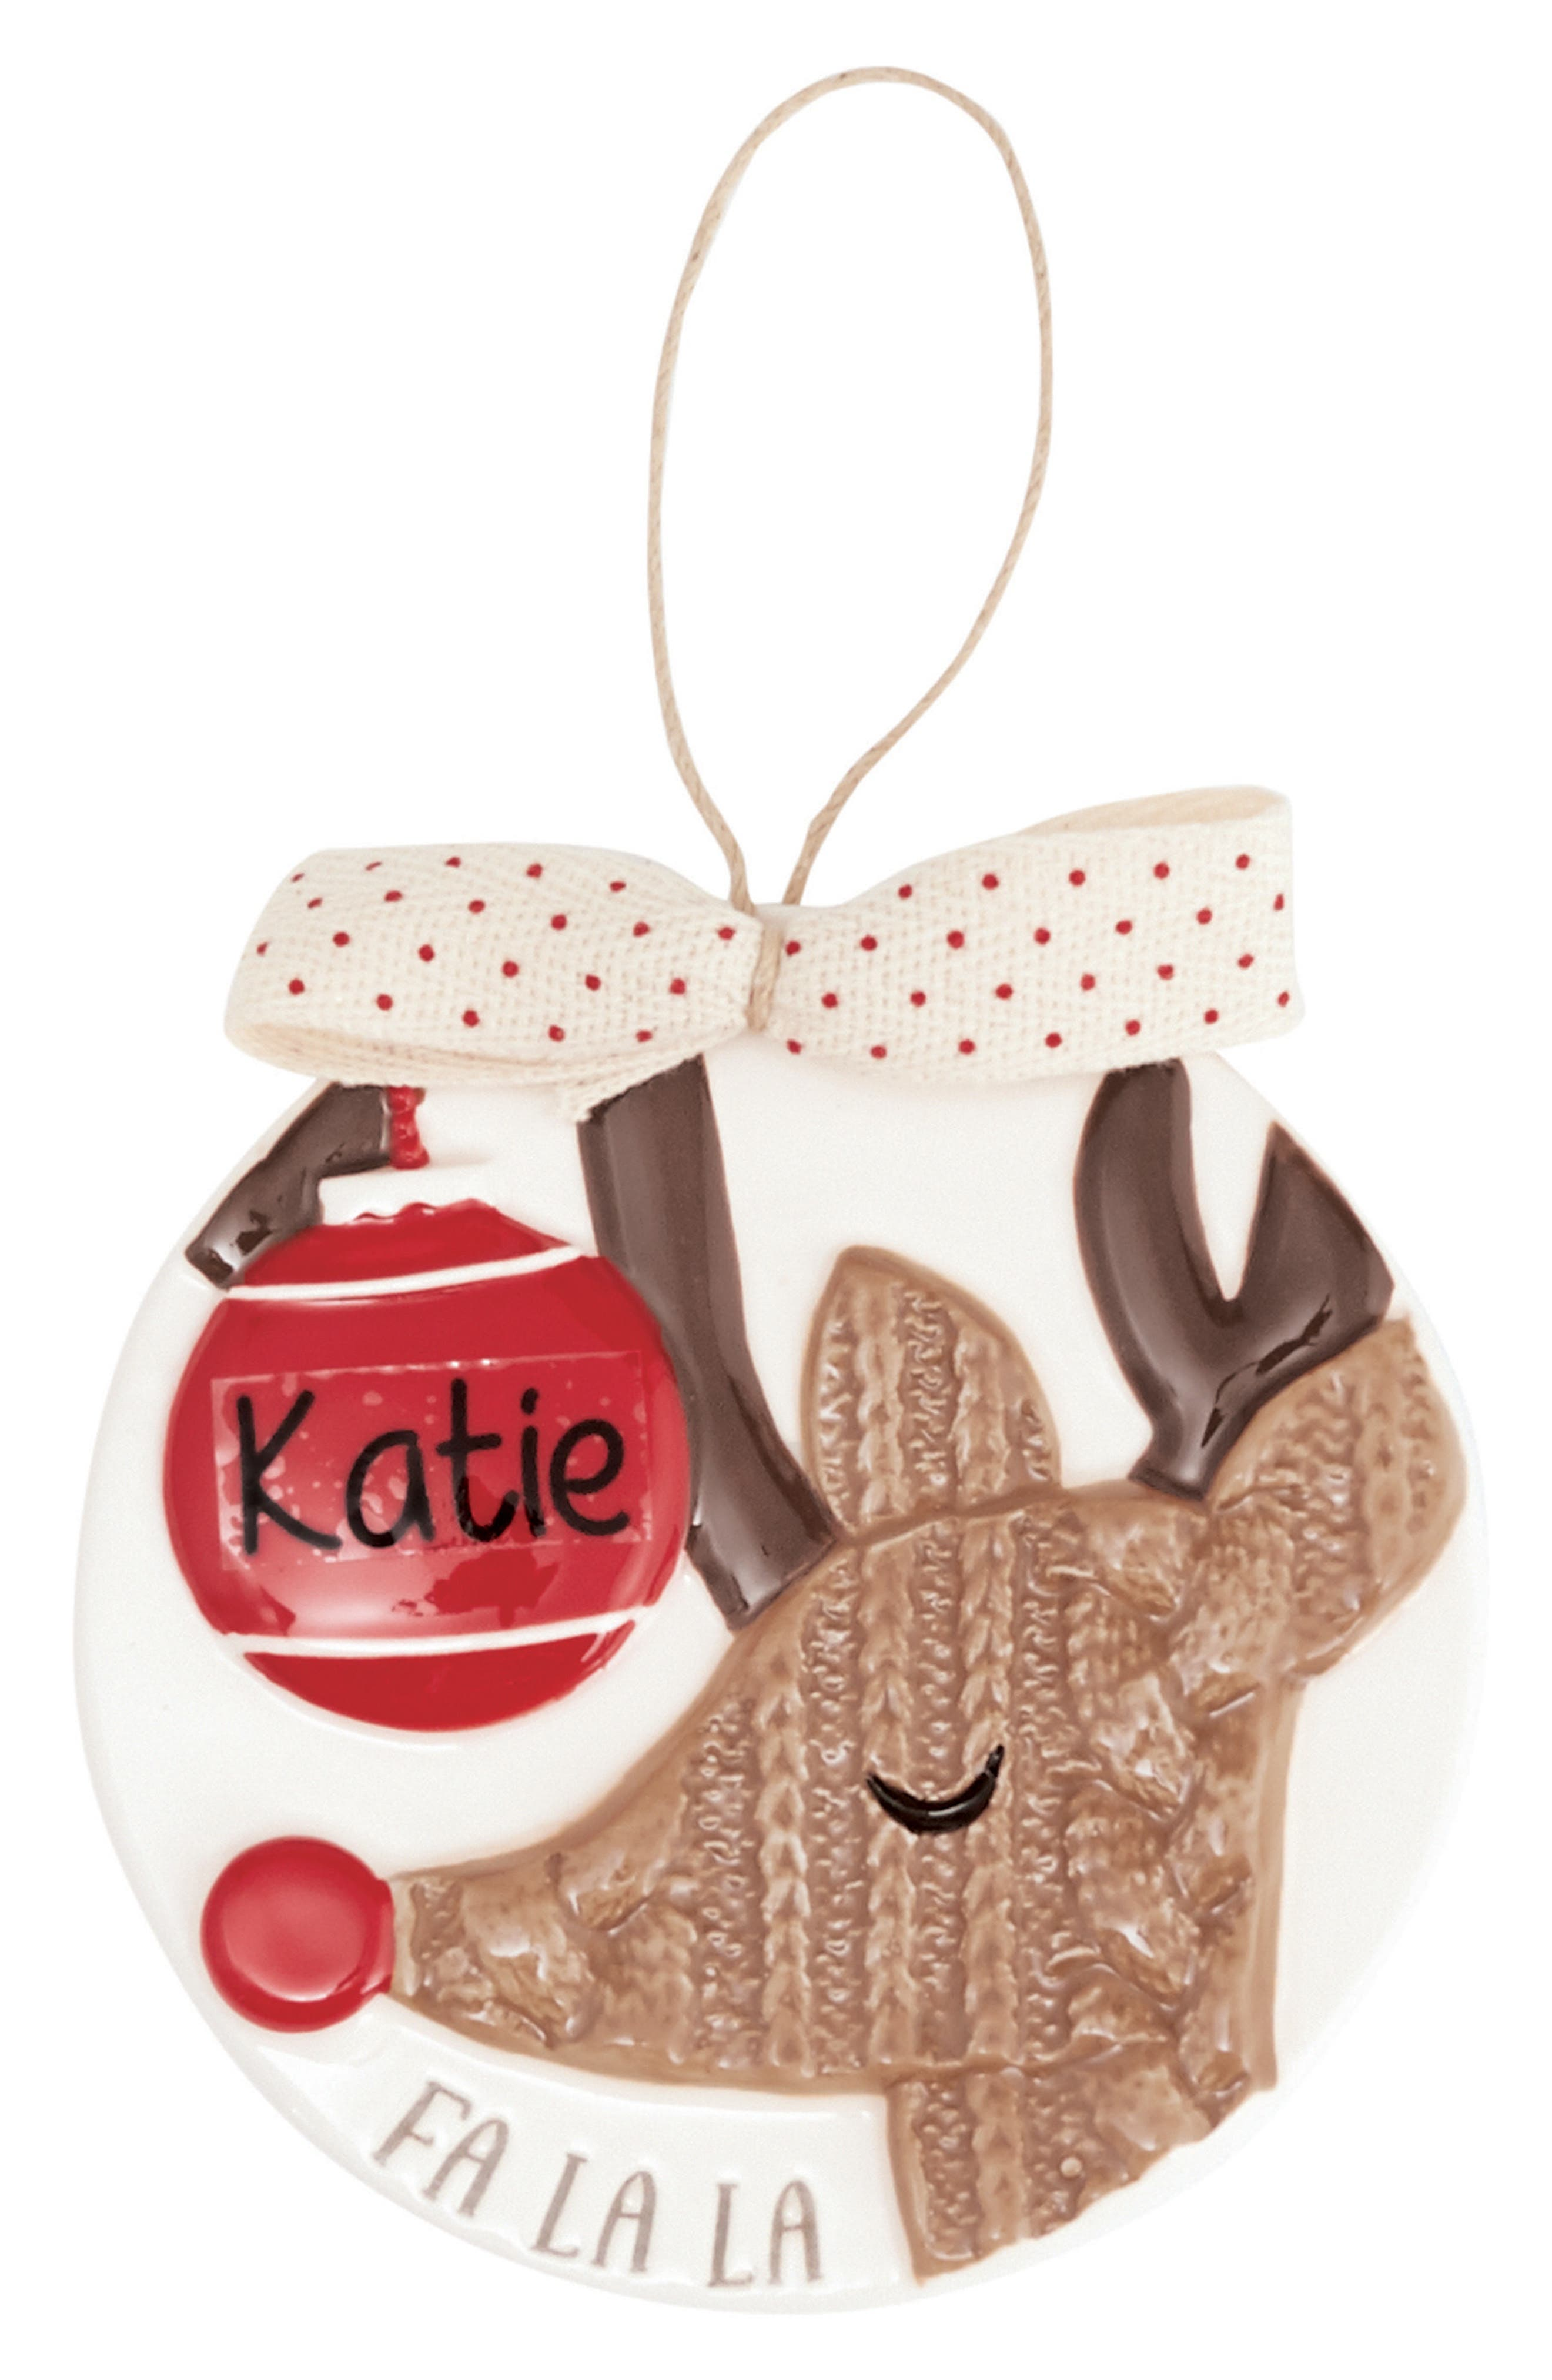 Reindeer Ornament with Personalization Sticker,                             Main thumbnail 1, color,                             100